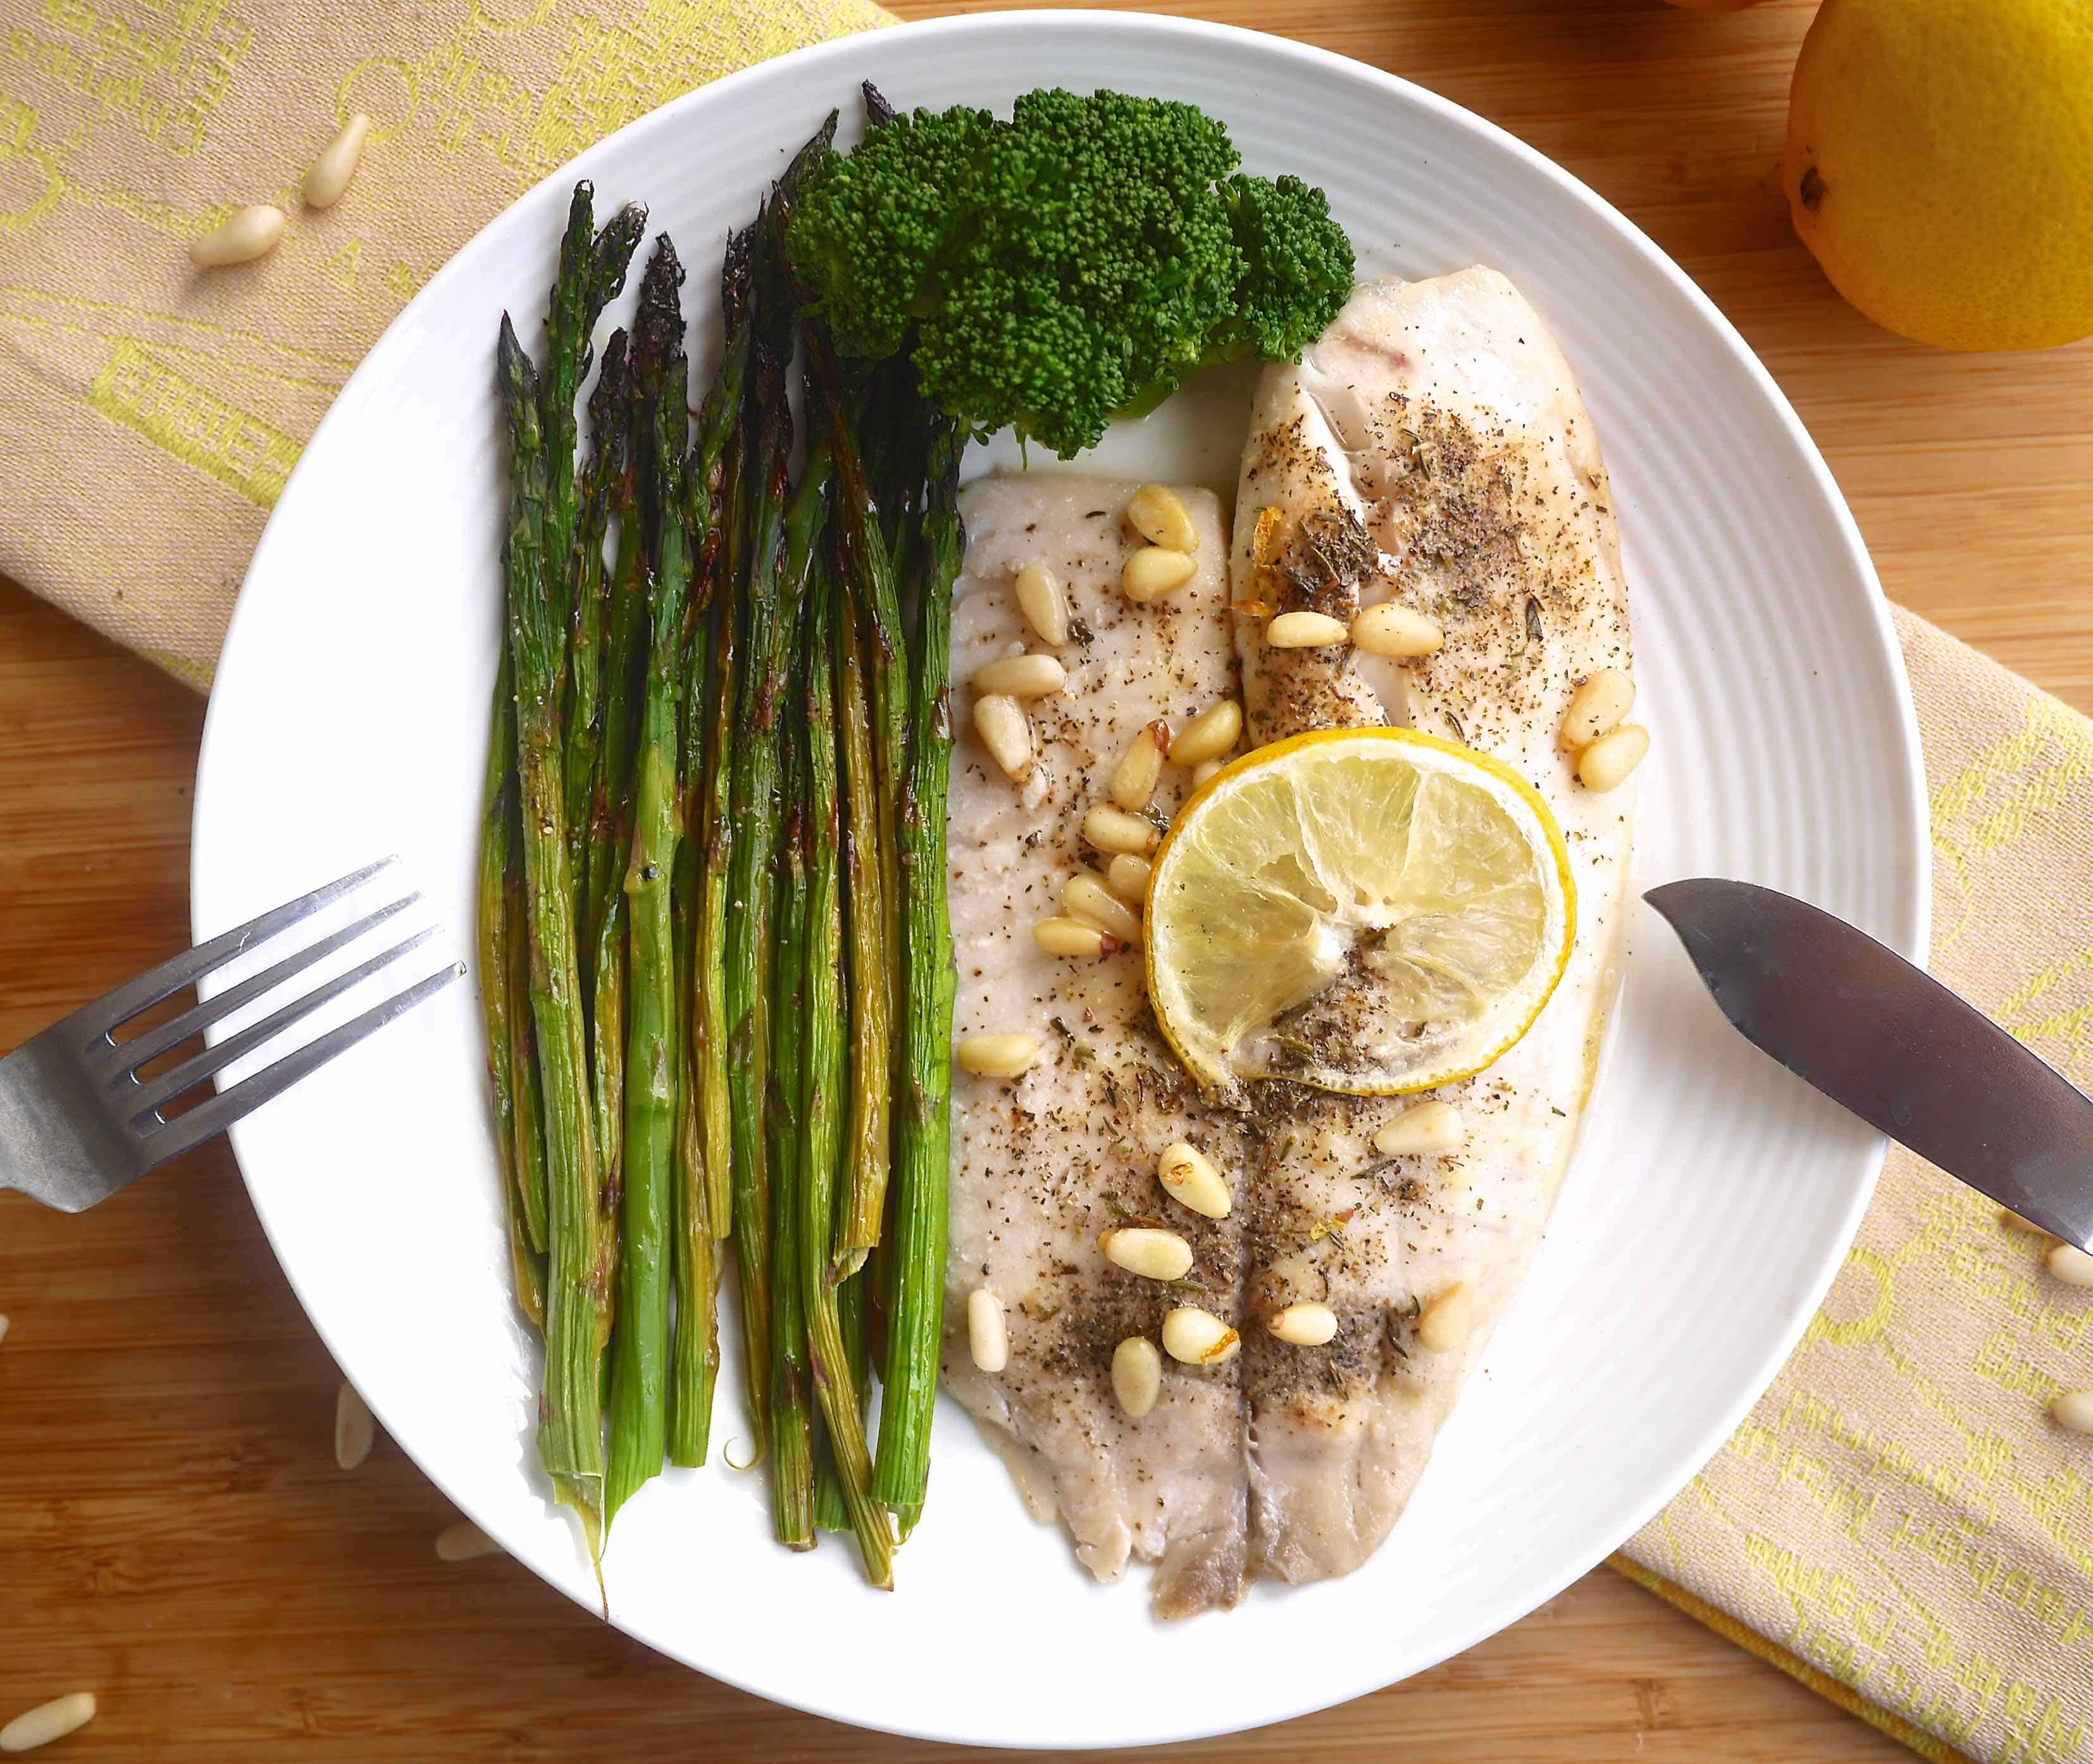 25 Minute Lemon Tilapia And Asparagus (paleo, Gf)